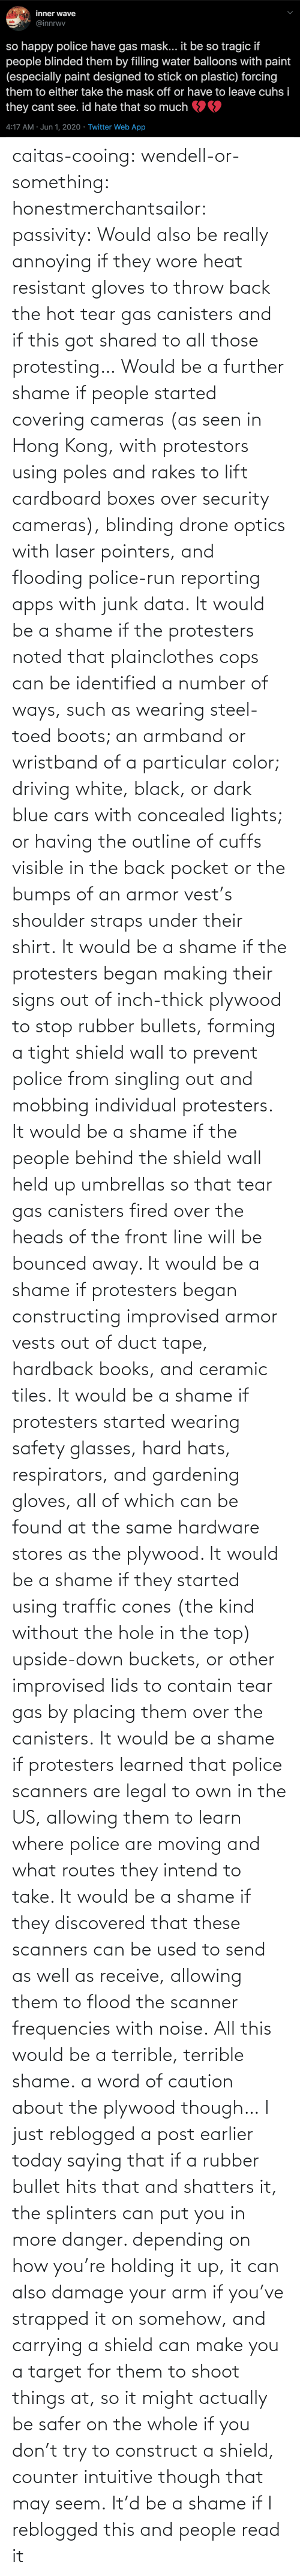 Hong Kong: caitas-cooing:  wendell-or-something: honestmerchantsailor:  passivity: Would also be really annoying if they wore heat resistant gloves to throw back the hot tear gas canisters and if this got shared to all those protesting… Would be a further shame if people started covering cameras (as seen in Hong Kong, with protestors using poles and rakes to lift cardboard boxes over security cameras), blinding drone optics with laser pointers, and flooding police-run reporting apps with junk data. It would be a shame if the protesters noted that plainclothes cops can be identified a number of ways, such as wearing steel-toed boots; an armband or wristband of a particular color; driving white, black, or dark blue cars with concealed lights; or having the outline of cuffs visible in the back pocket or the bumps of an armor vest's shoulder straps under their shirt. It would be a shame if the protesters began making their signs out of inch-thick plywood to stop rubber bullets, forming a tight shield wall to prevent police from singling out and mobbing individual protesters. It would be a shame if the people behind the shield wall held up umbrellas so that tear gas canisters fired over the heads of the front line will be bounced away. It would be a shame if protesters began constructing improvised armor vests out of duct tape, hardback books, and ceramic tiles. It would be a shame if protesters started wearing safety glasses, hard hats, respirators, and gardening gloves, all of which can be found at the same hardware stores as the plywood. It would be a shame if they started using traffic cones (the kind without the hole in the top) upside-down buckets, or other improvised lids to contain tear gas by placing them over the canisters. It would be a shame if protesters learned that police scanners are legal to own in the US, allowing them to learn where police are moving and what routes they intend to take. It would be a shame if they discovered that these scanners can be used to send as well as receive, allowing them to flood the scanner frequencies with noise. All this would be a terrible, terrible shame.    a word of caution about the plywood though… I just reblogged a post earlier today saying that if a rubber bullet hits that and shatters it, the splinters can put you in more danger. depending on how you're holding it up, it can also damage your arm if you've strapped it on somehow, and carrying a shield can make you a target for them to shoot things at, so it might actually be safer on the whole if you don't try to construct a shield, counter intuitive though that may seem.    It'd be a shame if I reblogged this and people read it